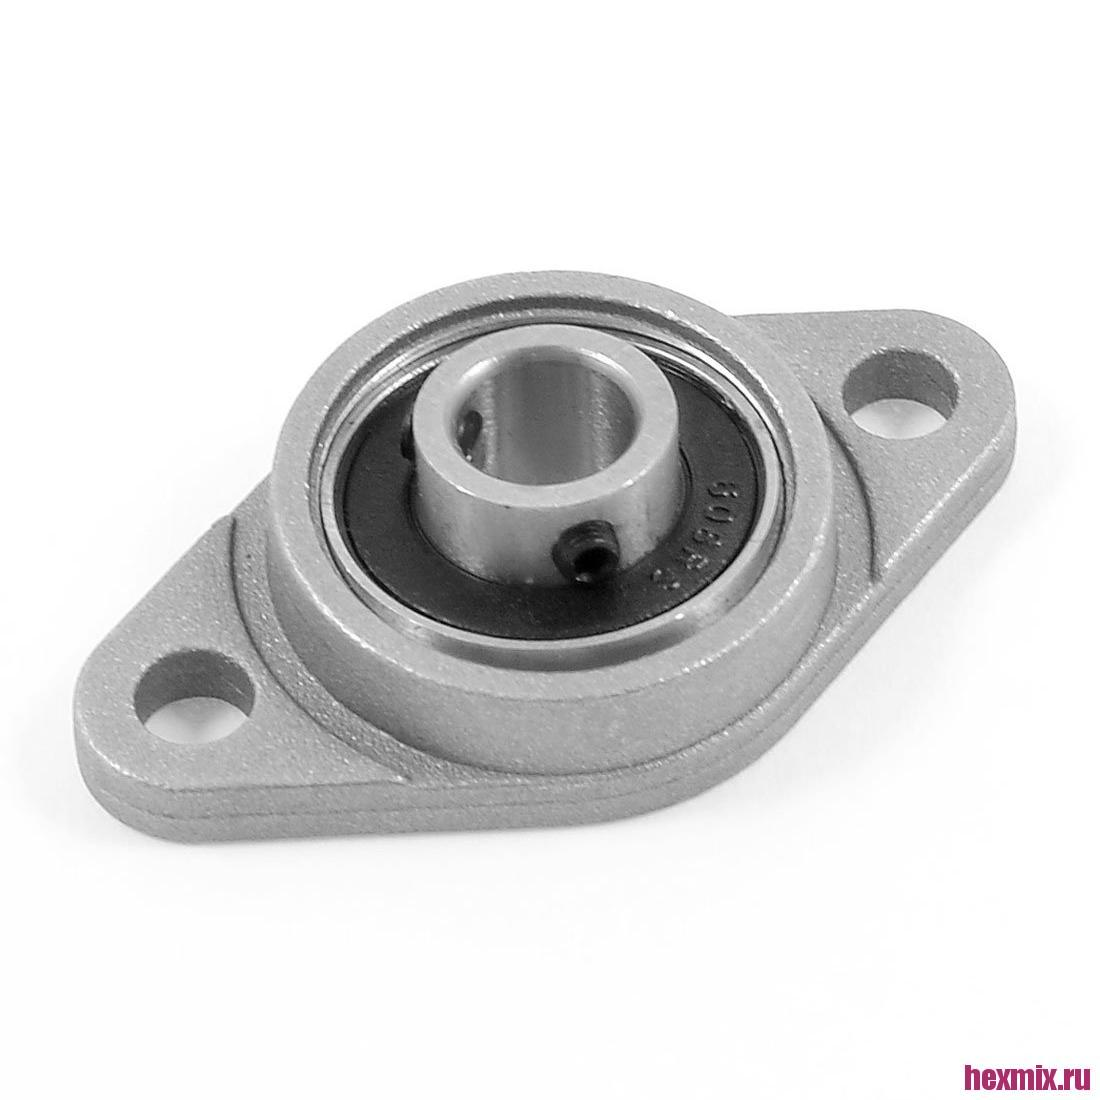 Flanged Bearing KFL08 8mm